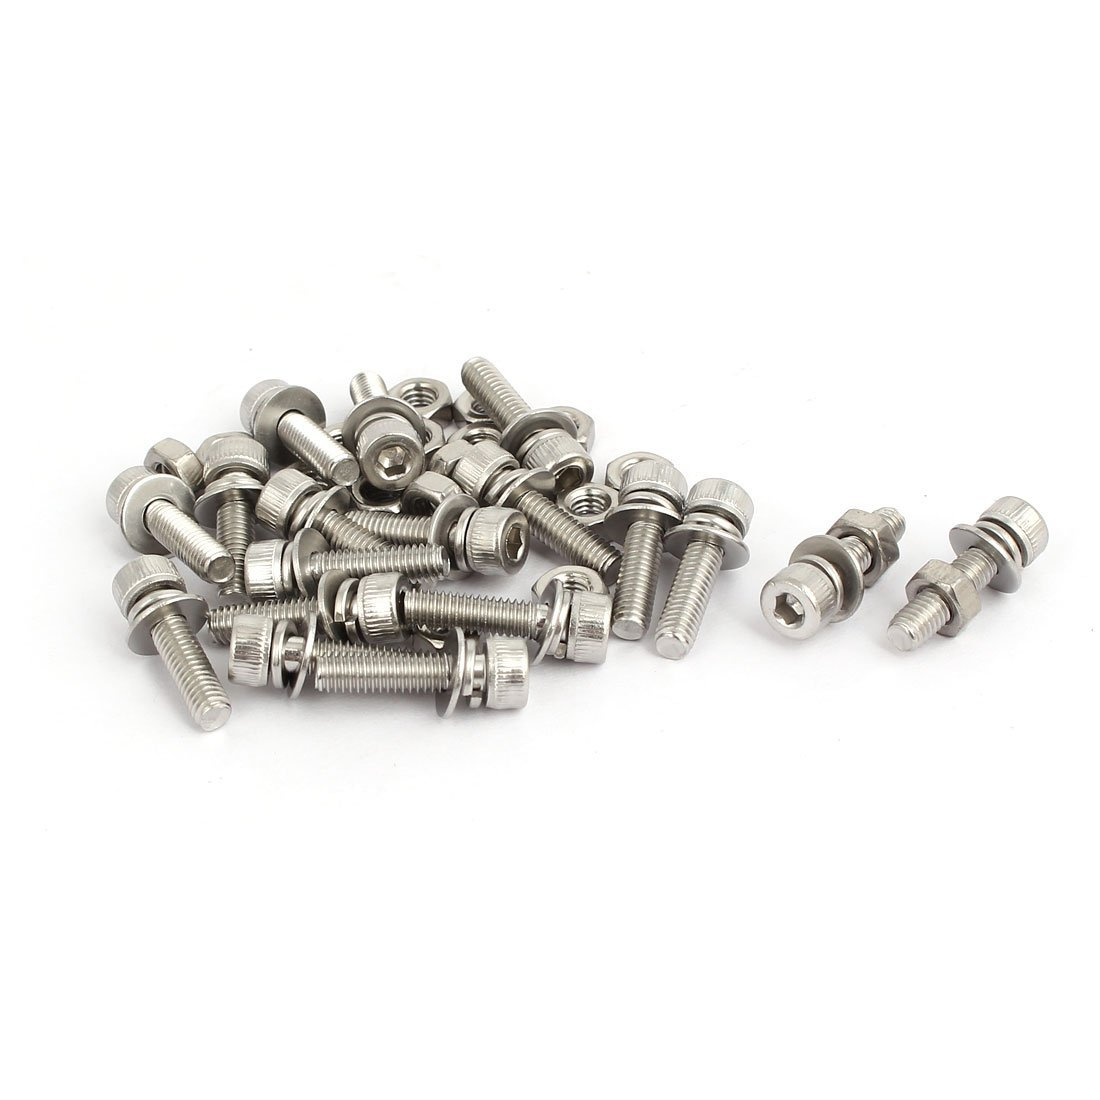 uxcell M4x16mm 304 Stainless Steel Hex Socket Head Cap Bolt Screw Nut w Washer 18 Sets